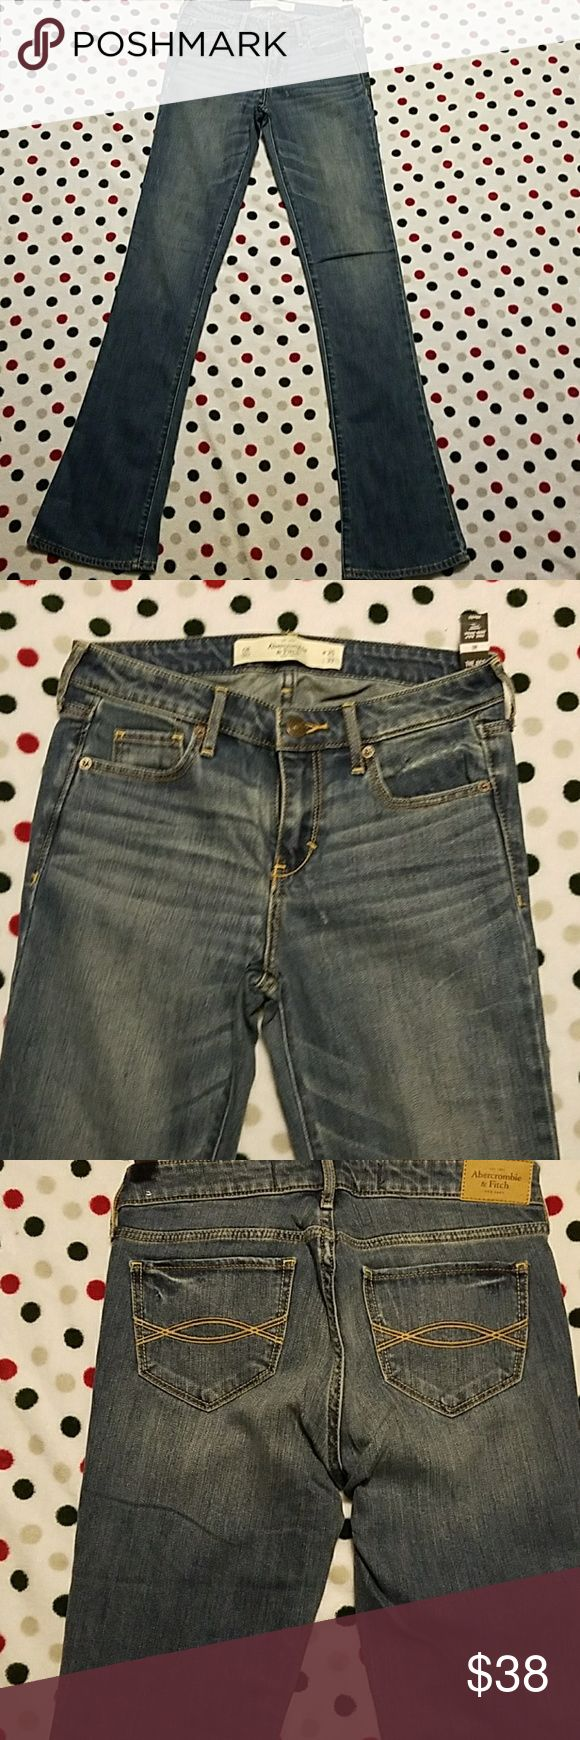 NWT Abercrombie and Fitch jeans size 0 skinny boot Brand new with tags Abercrombie and Fitch jeans size 0 skinny boot 25x33 Abercrombie & Fitch Jeans Boot Cut